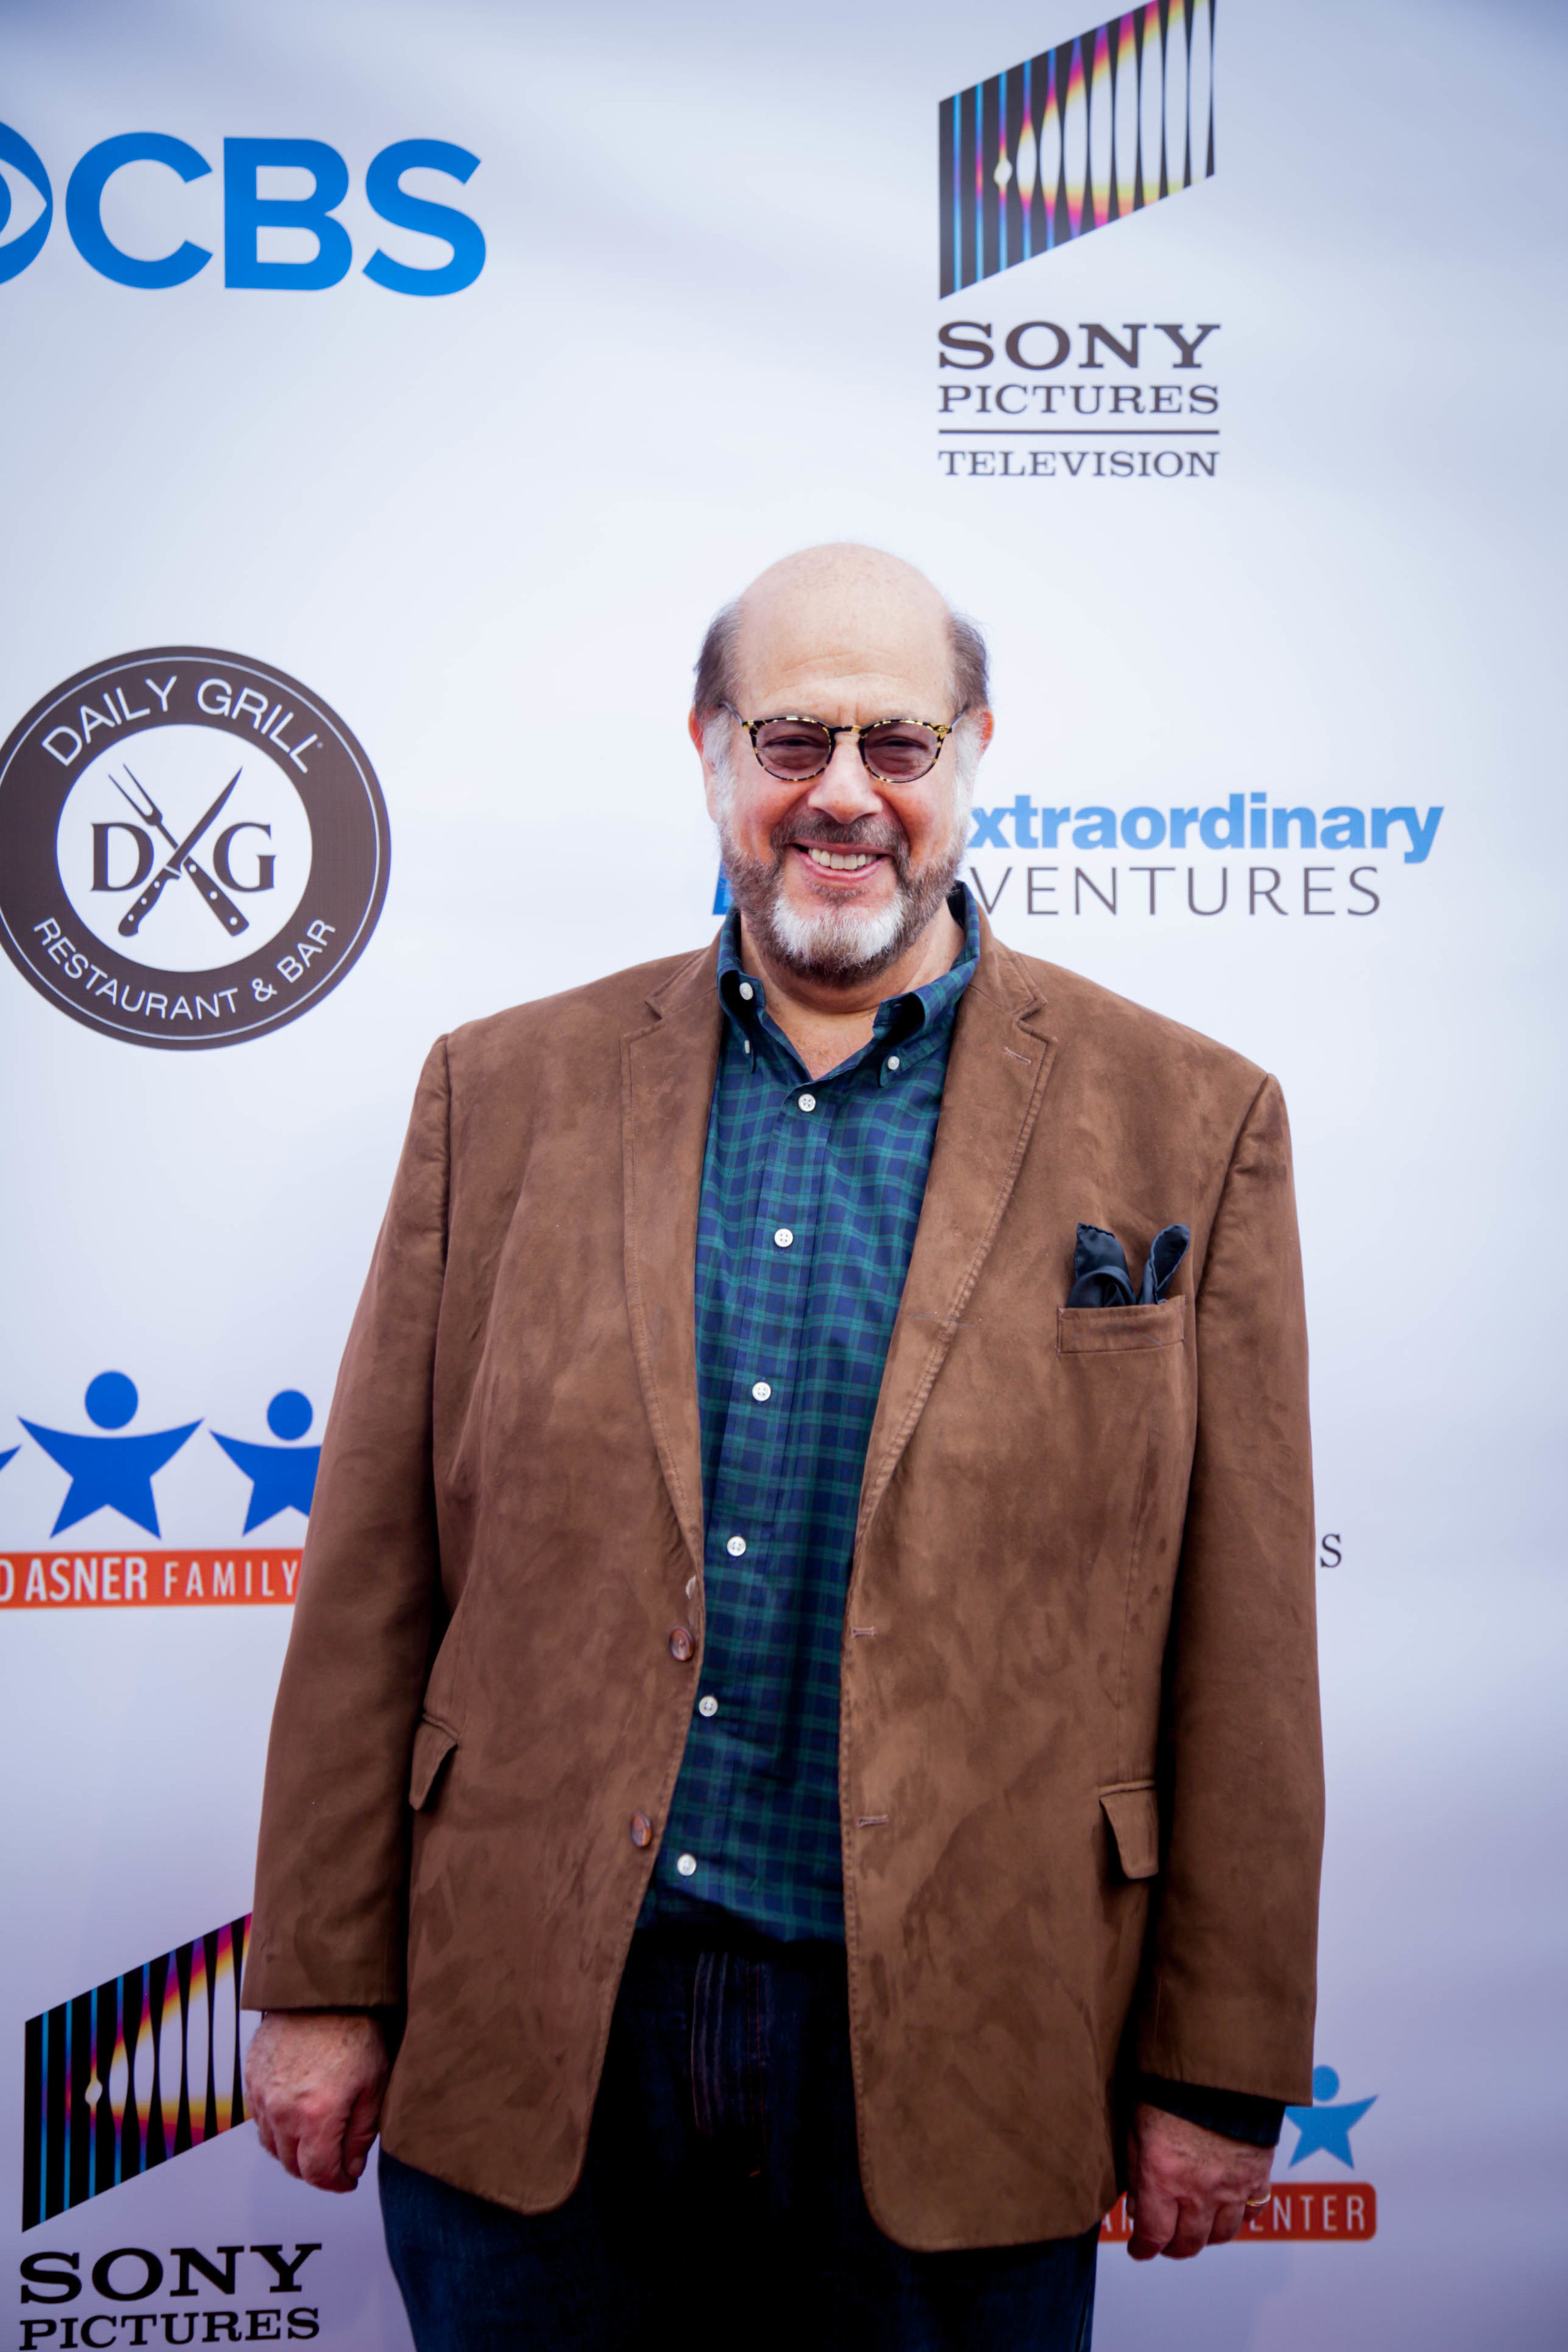 Fred Melamed. Photo by Erin Poole for Average Socialite.